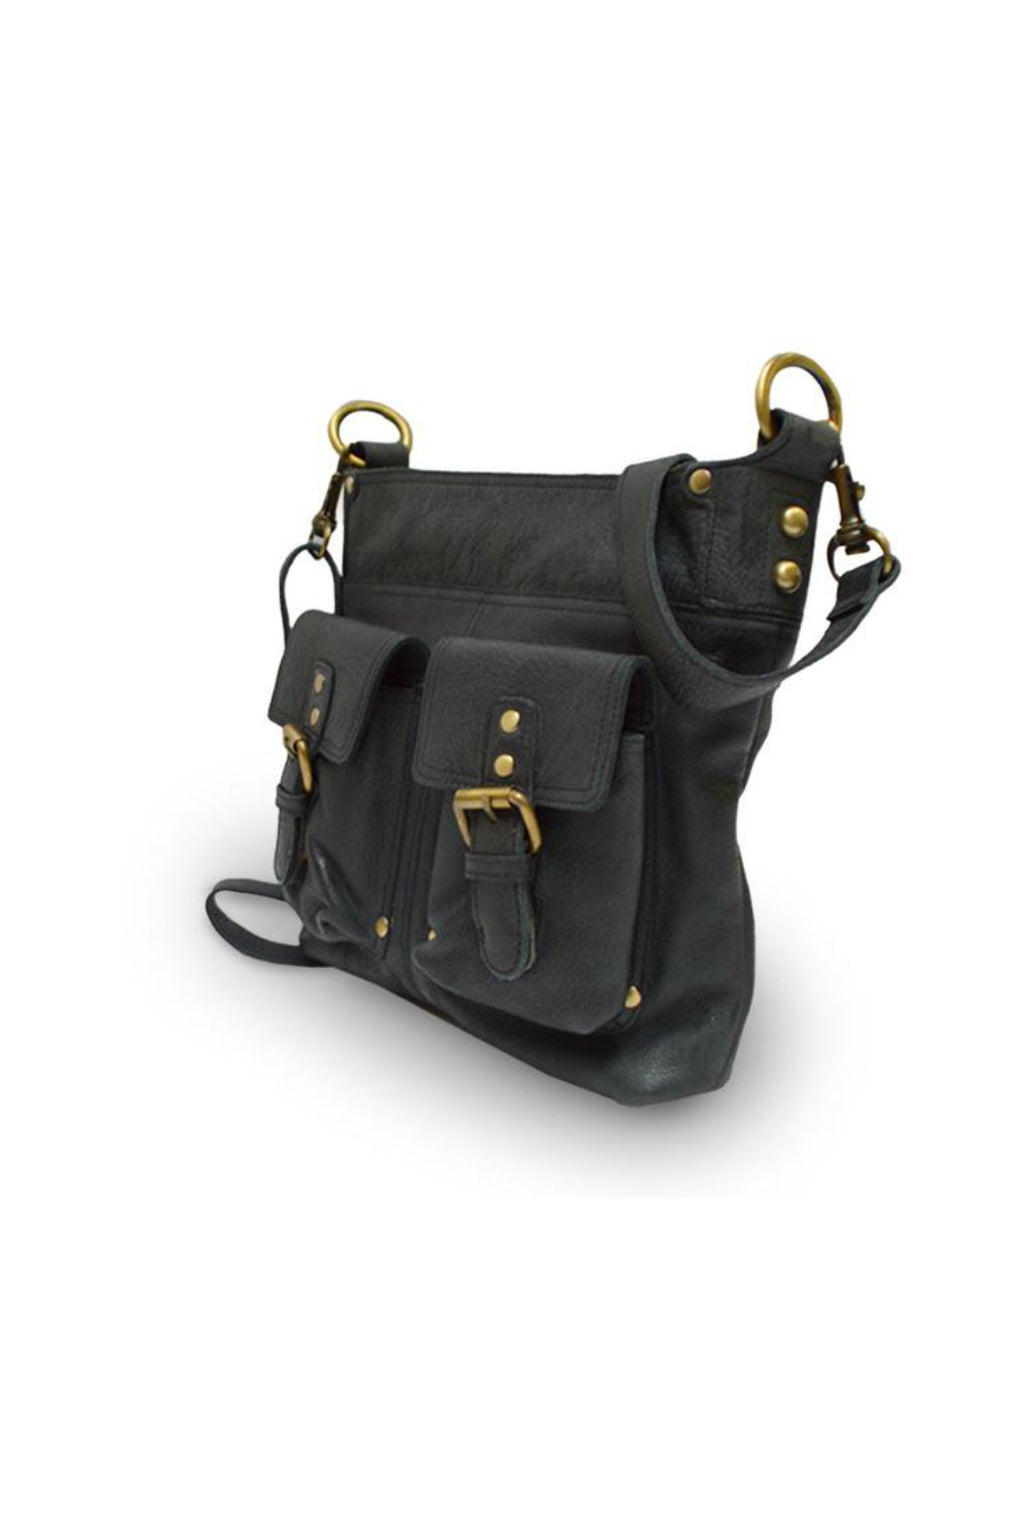 Anabaglish Joan Leather Bag in Black